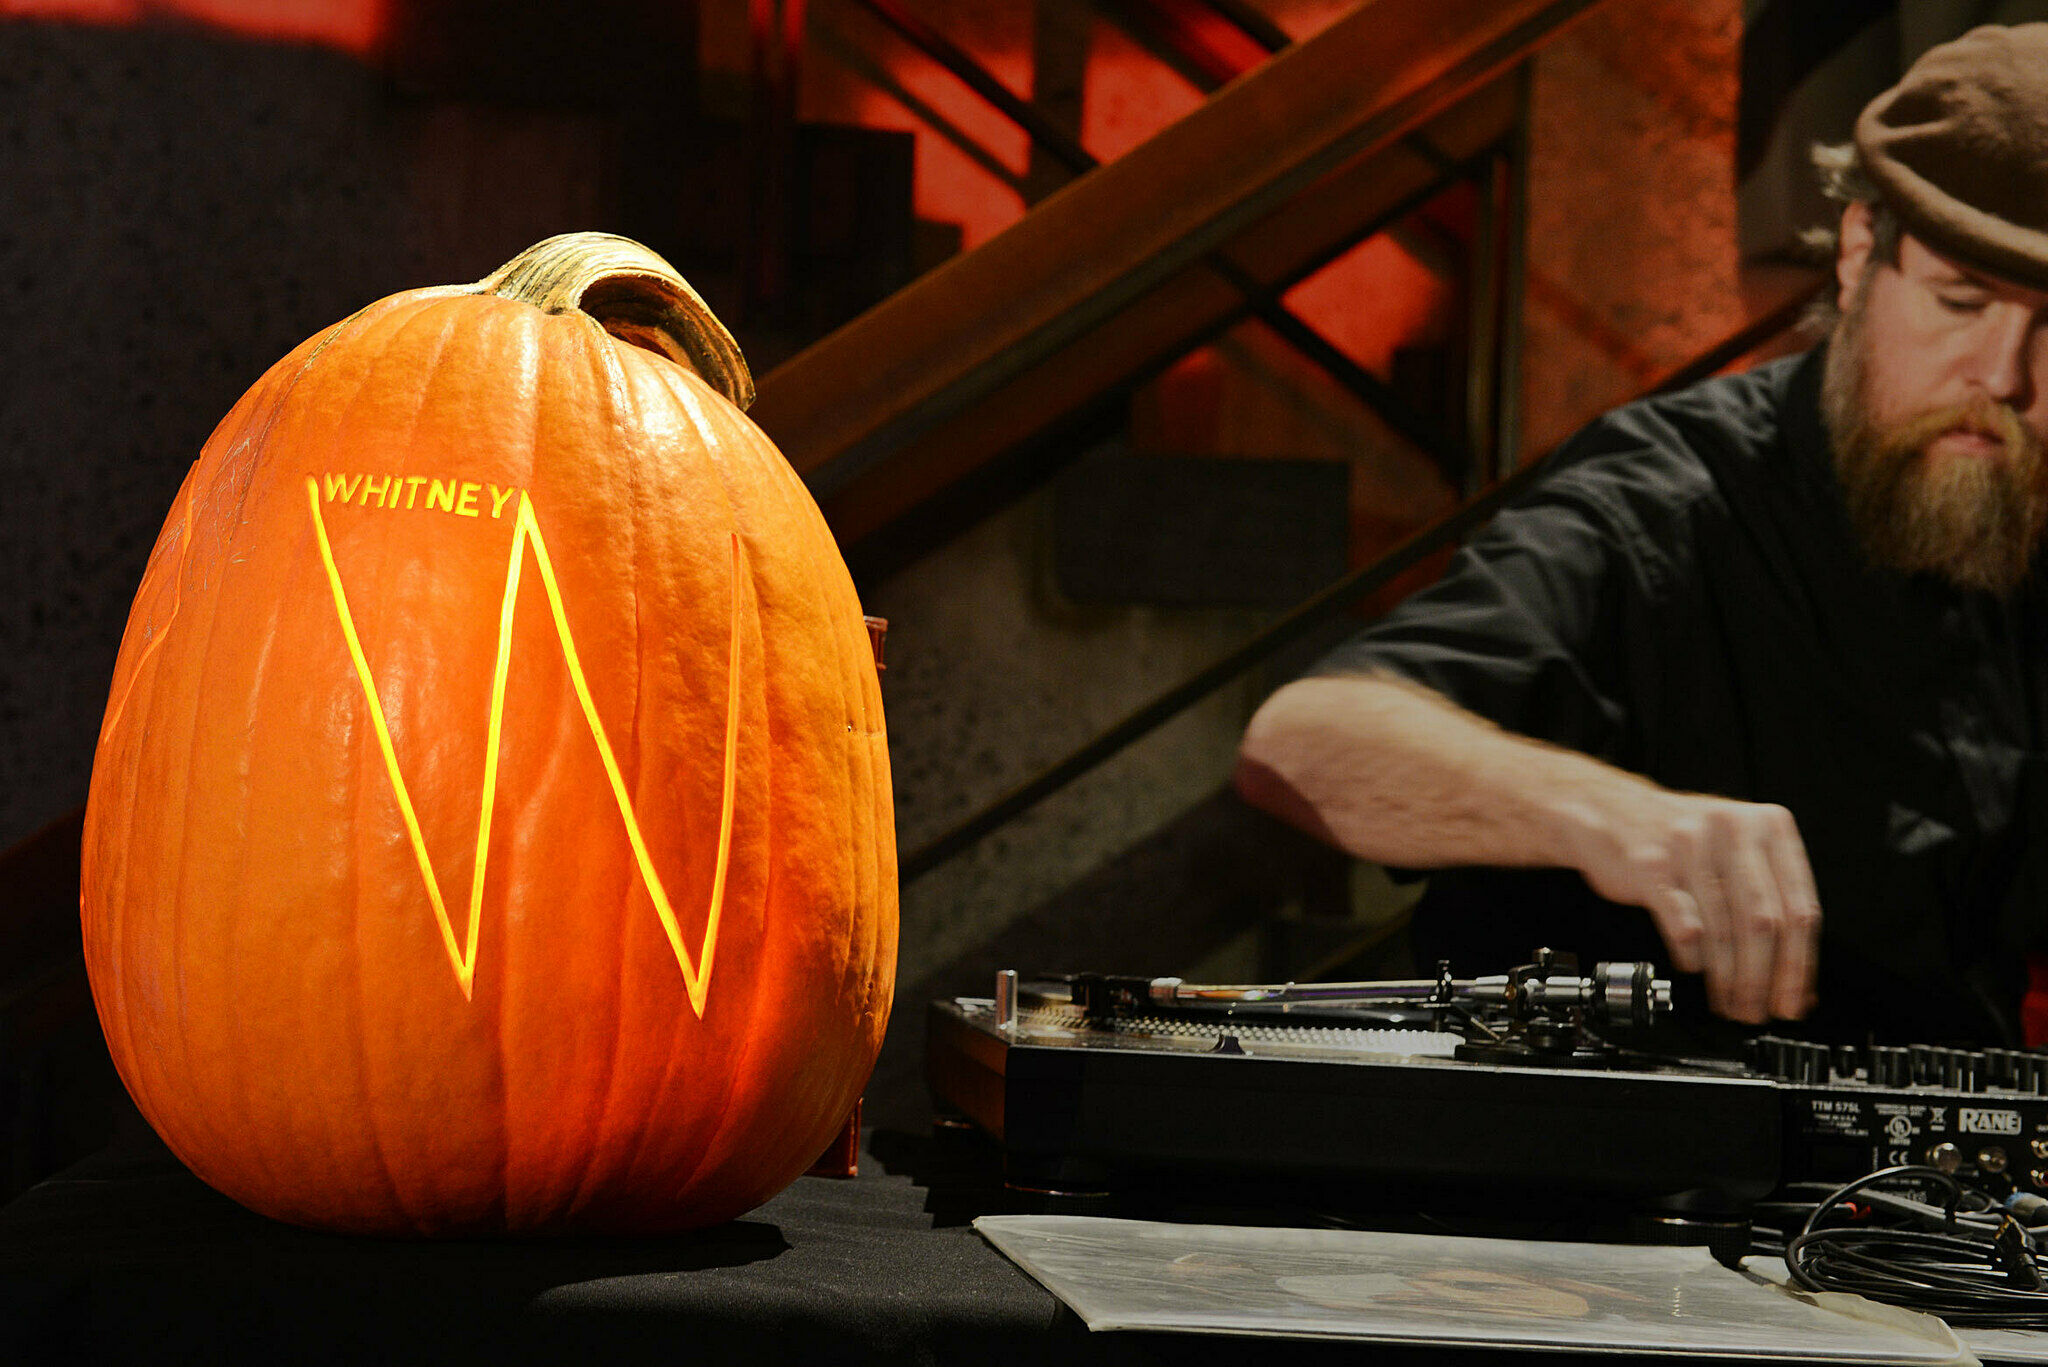 Pumpkin with whitney logo on it next to DJ playing records.